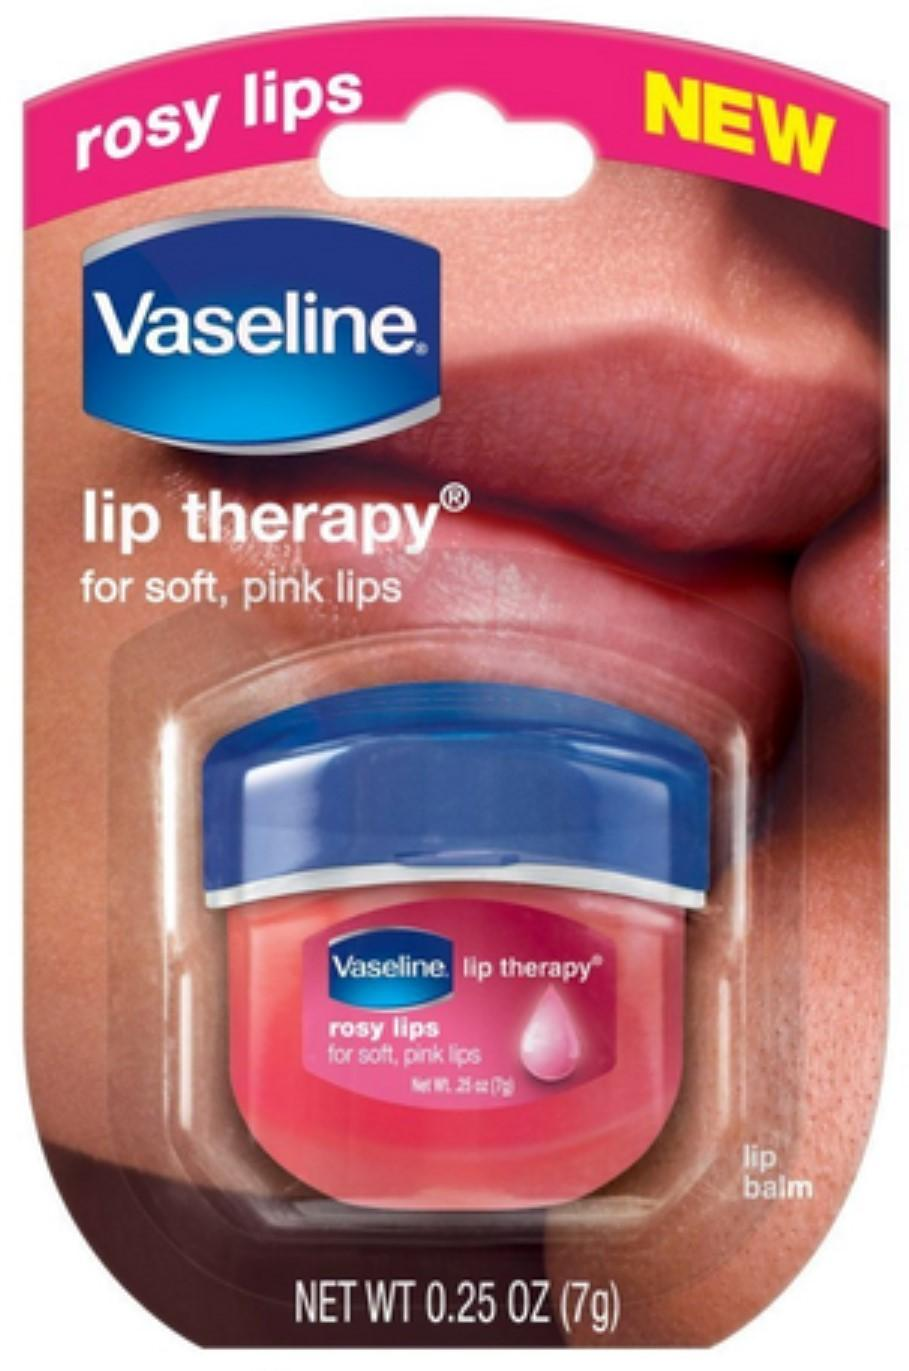 VASELINE Mini 7g Lip Therapy (ROSY LIPS) Philippines